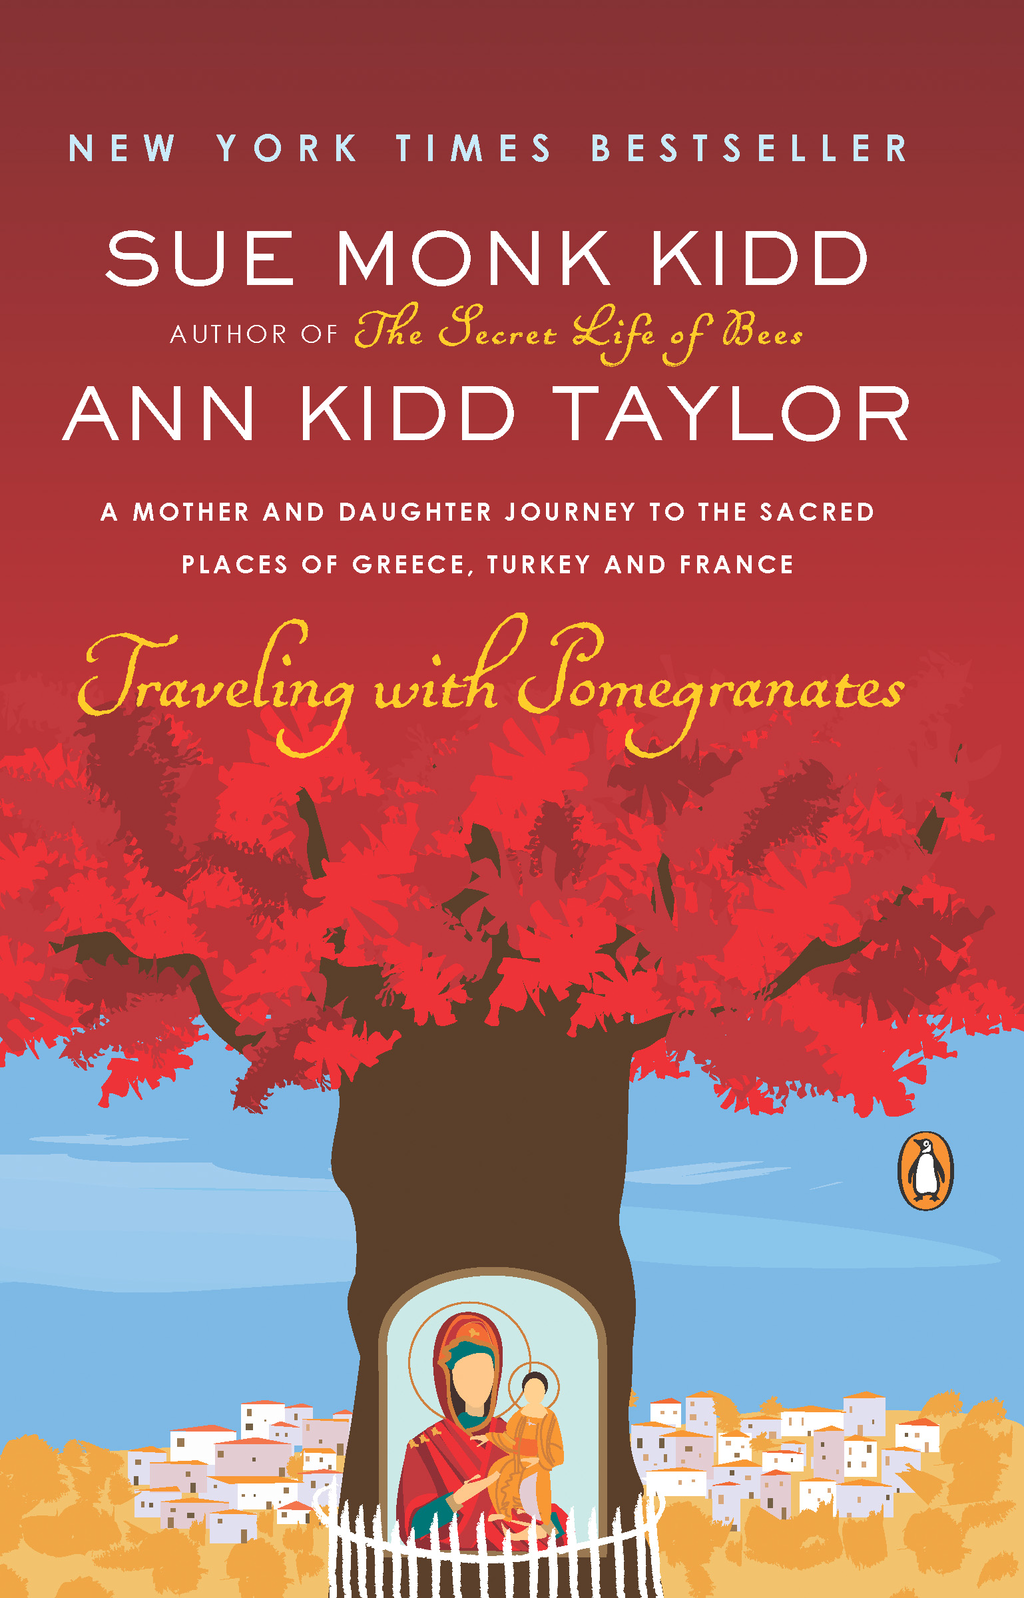 Traveling with Pomegranates: A Mother and Daughter Journey to the Sacred Places of Greece, Turkey, and France By: Ann Kidd Taylor,Sue Monk Kidd